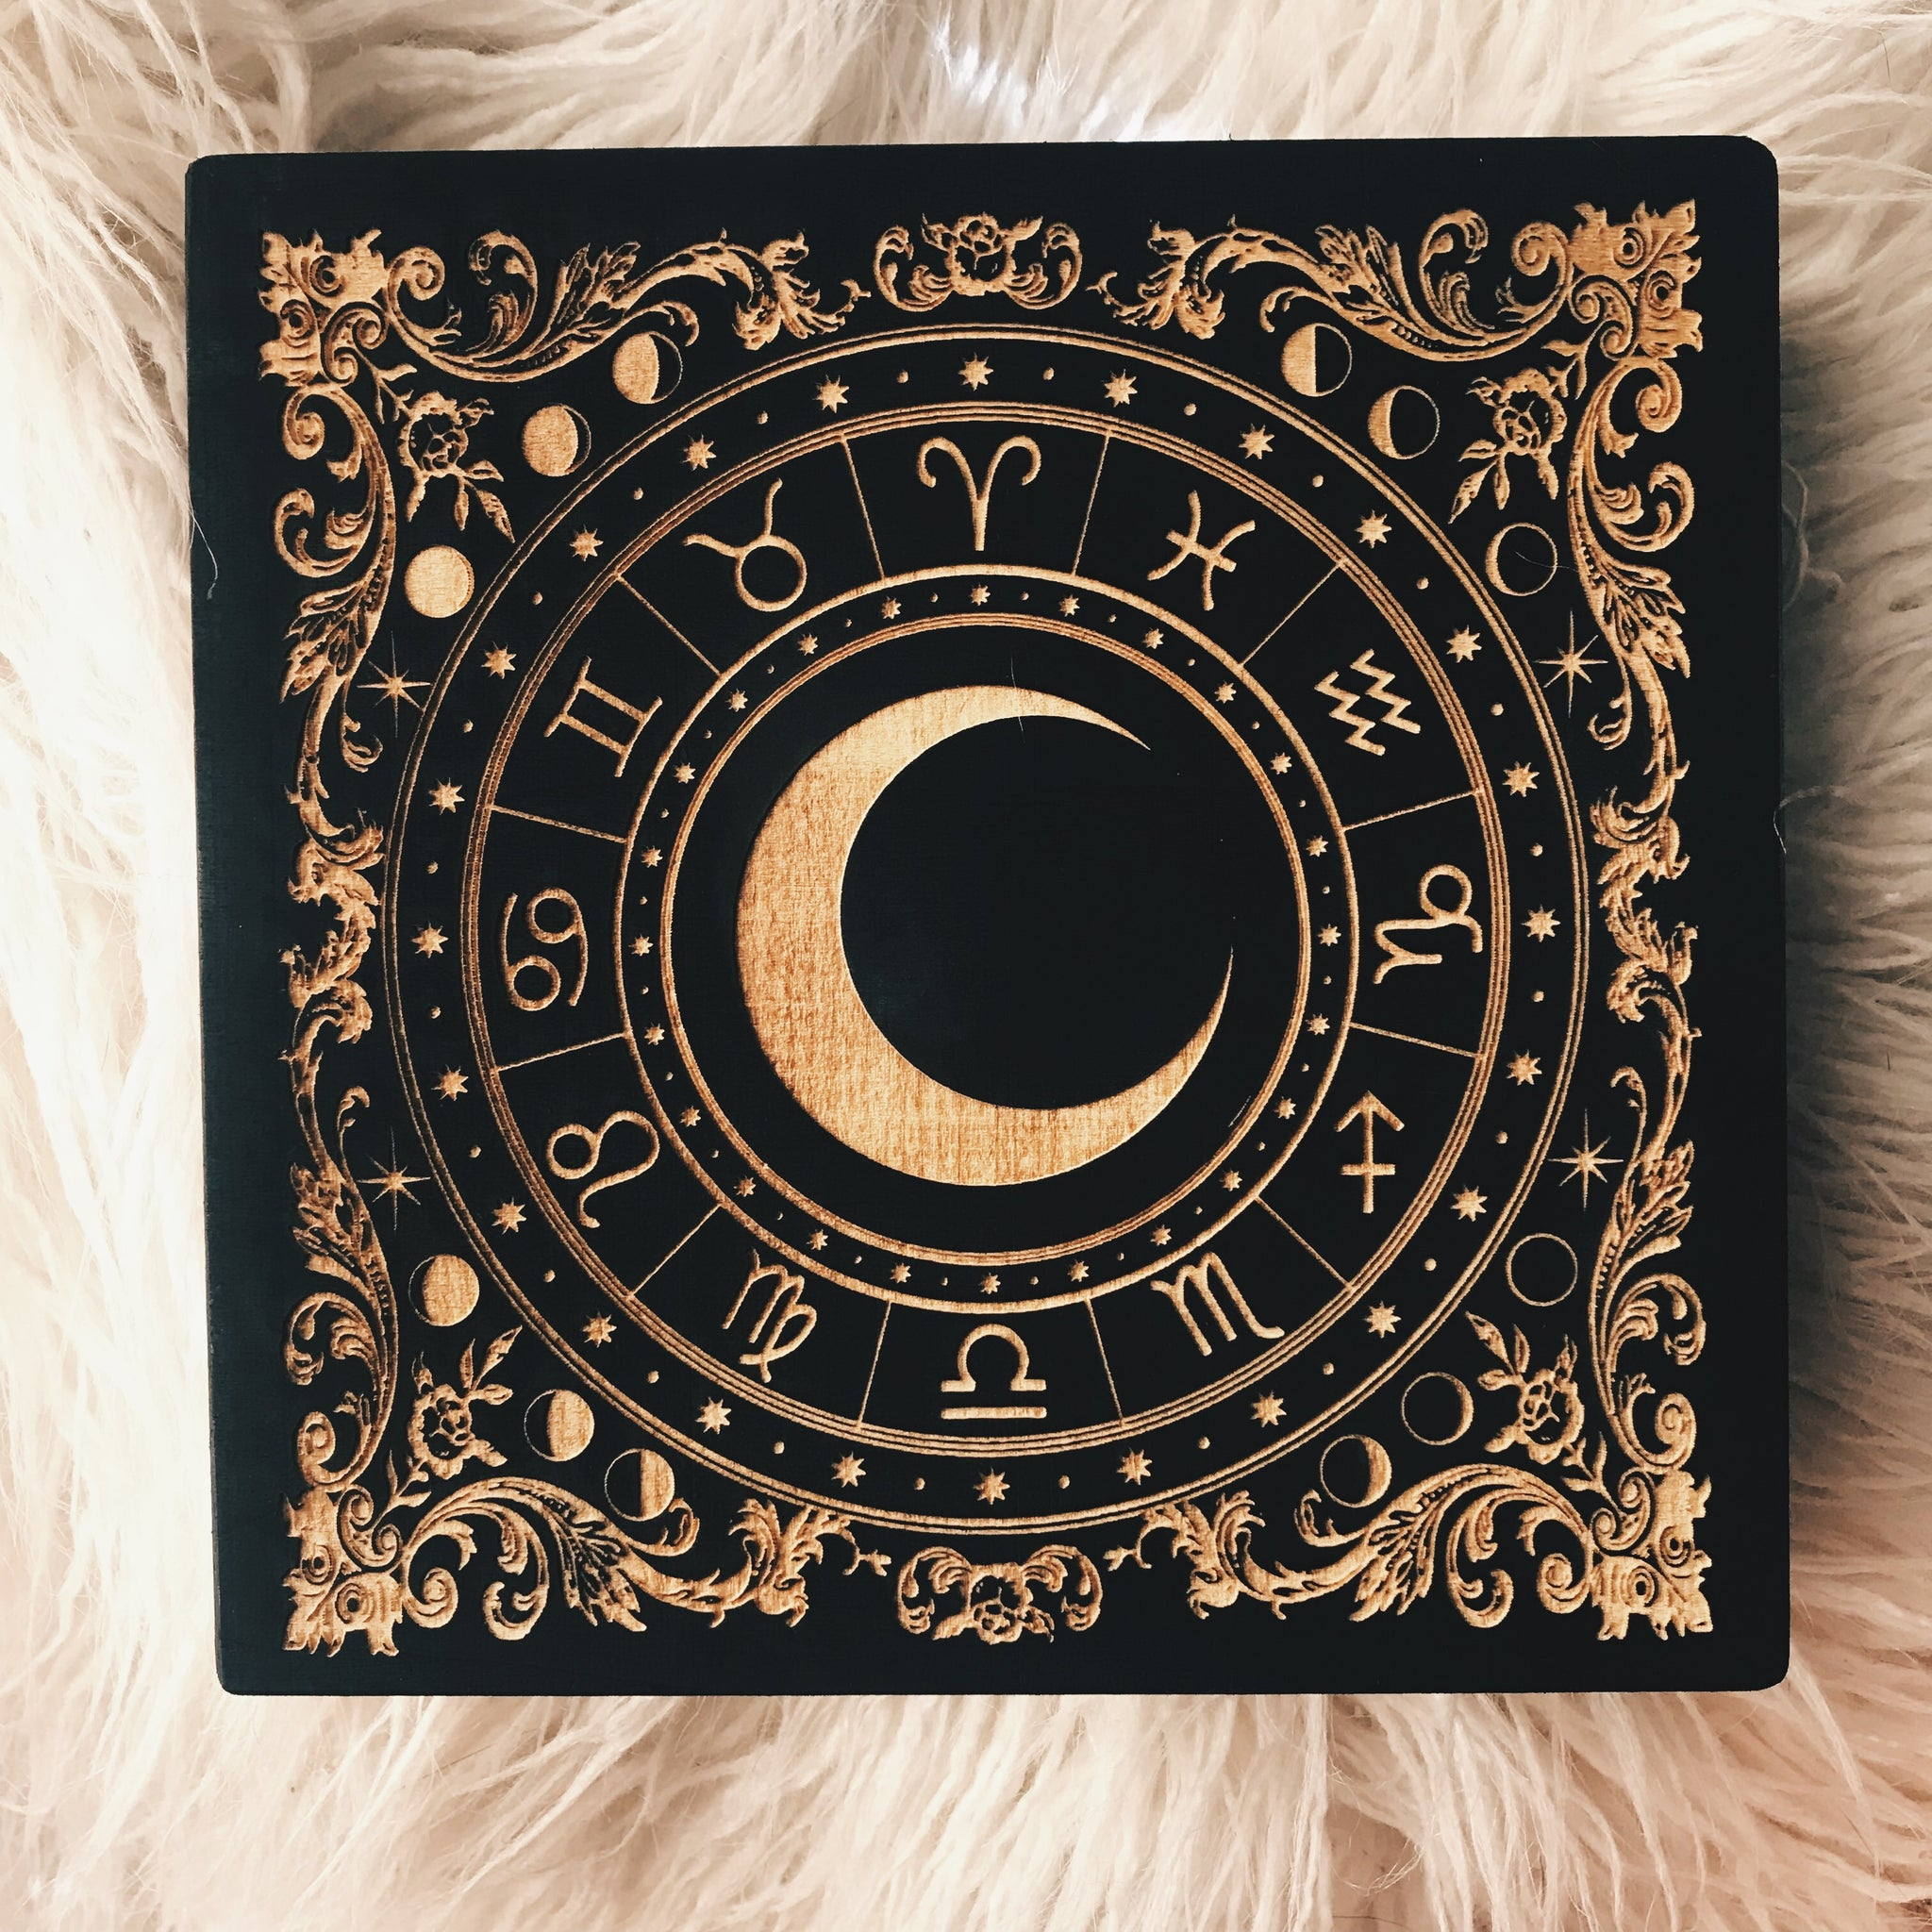 Astrology Altar Trinket Box - Moon Goddess Market